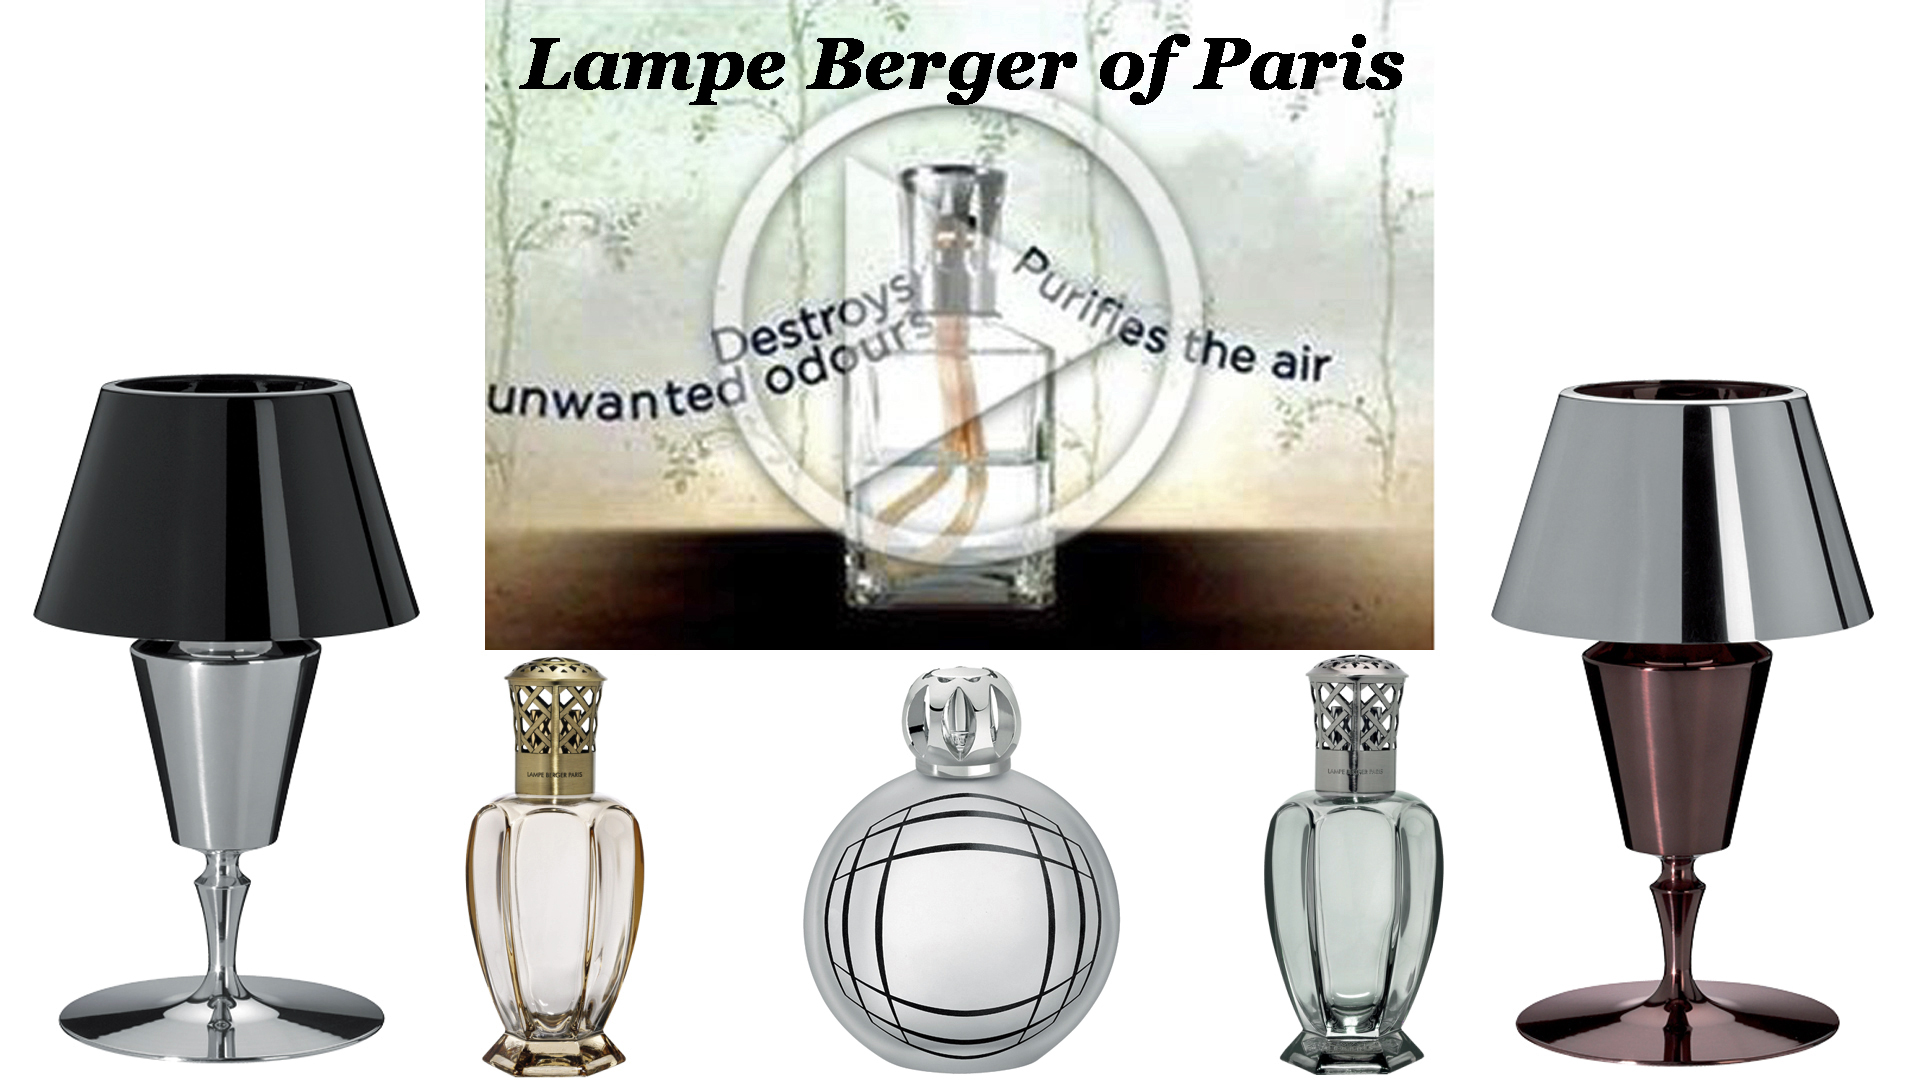 Lampe Berger Paris The Gallows Art Photo Mats Gifts And Accessories For